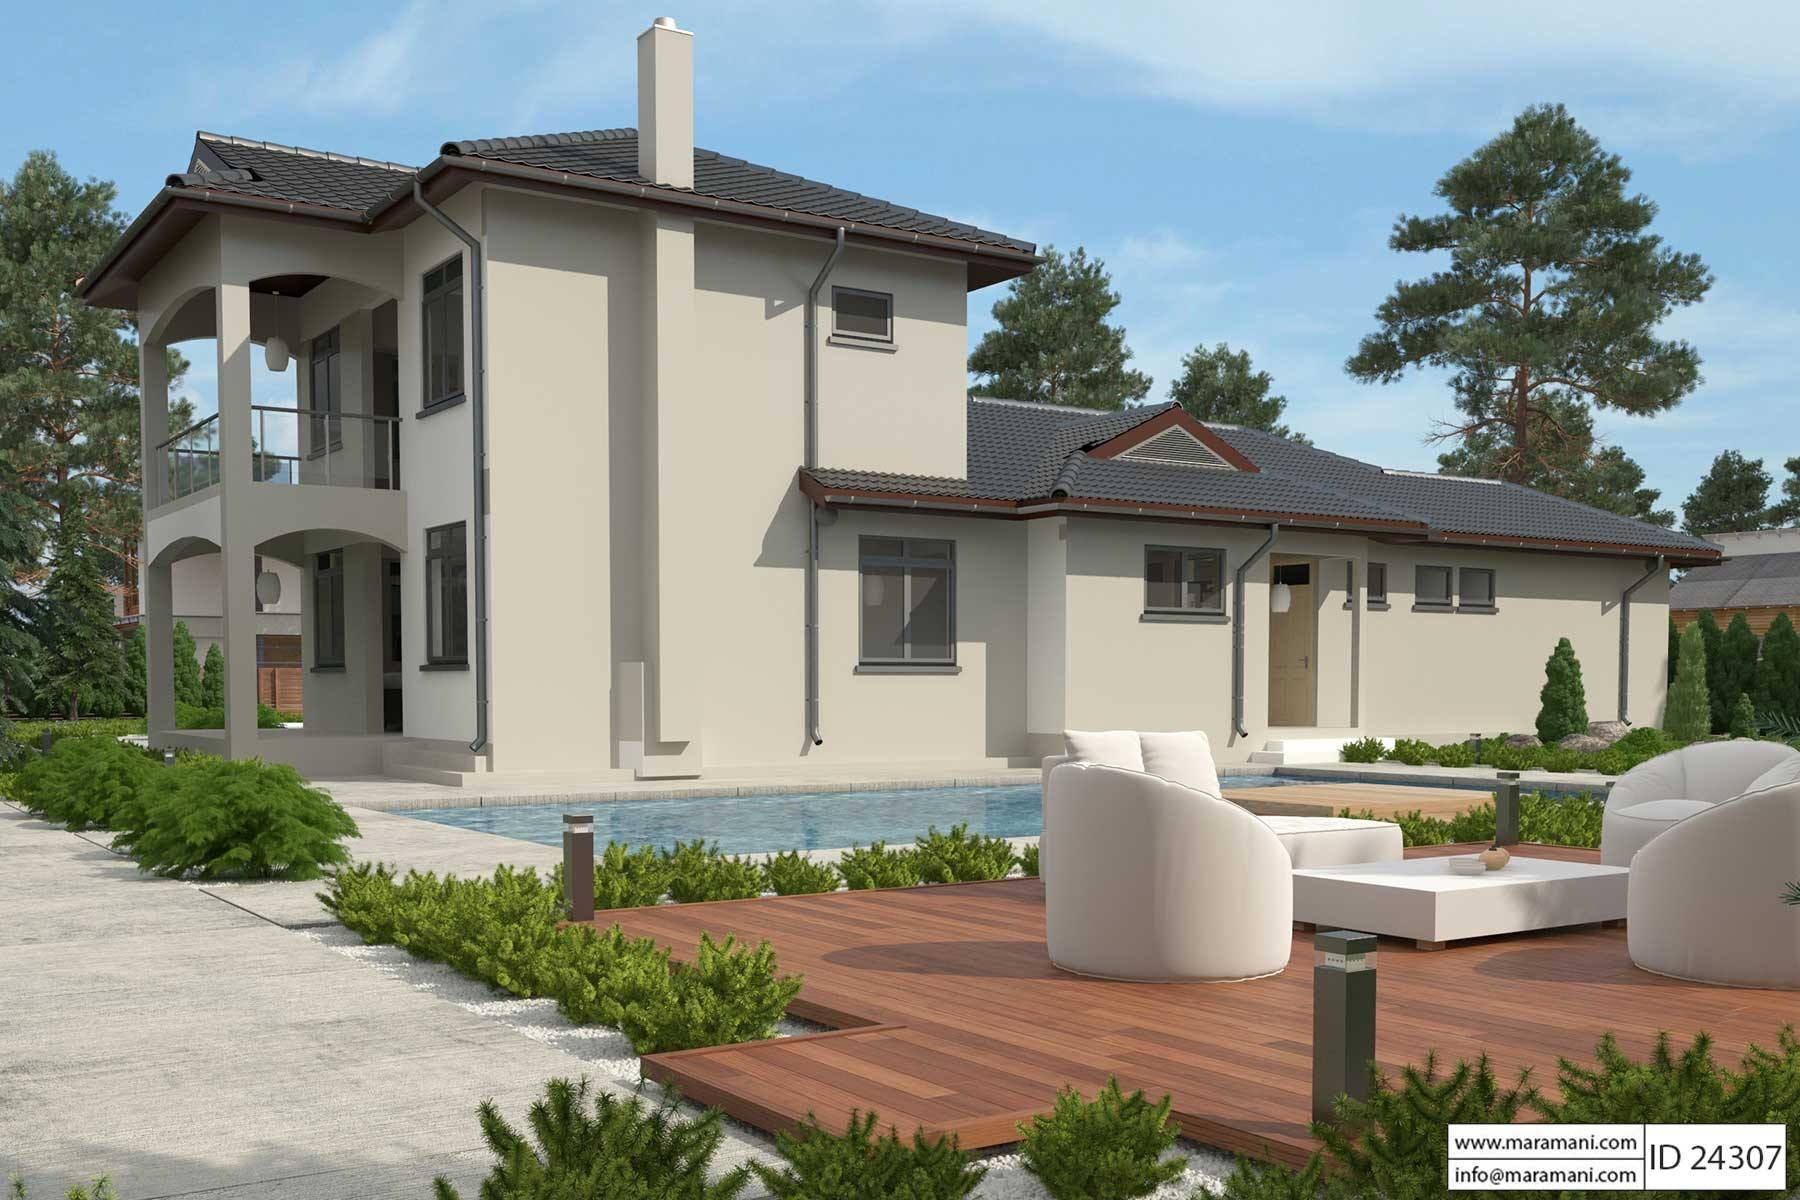 Home with First Floor Master Bedroom - ID 24307 - Plans by Maramani